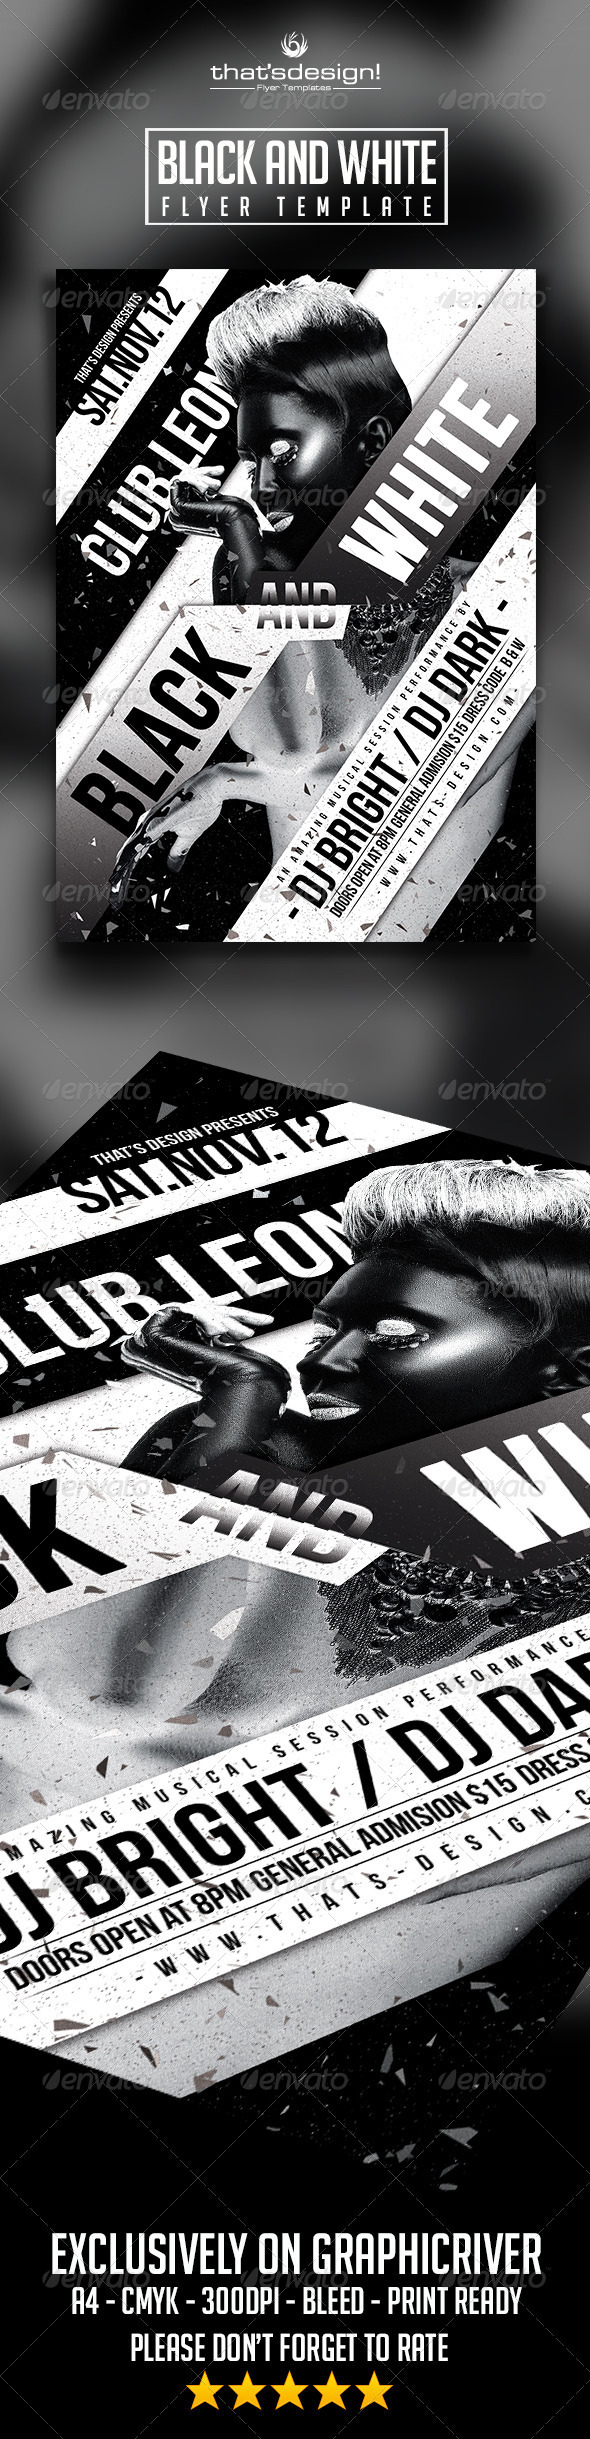 GraphicRiver Black and White Party Flyer Template 8295776